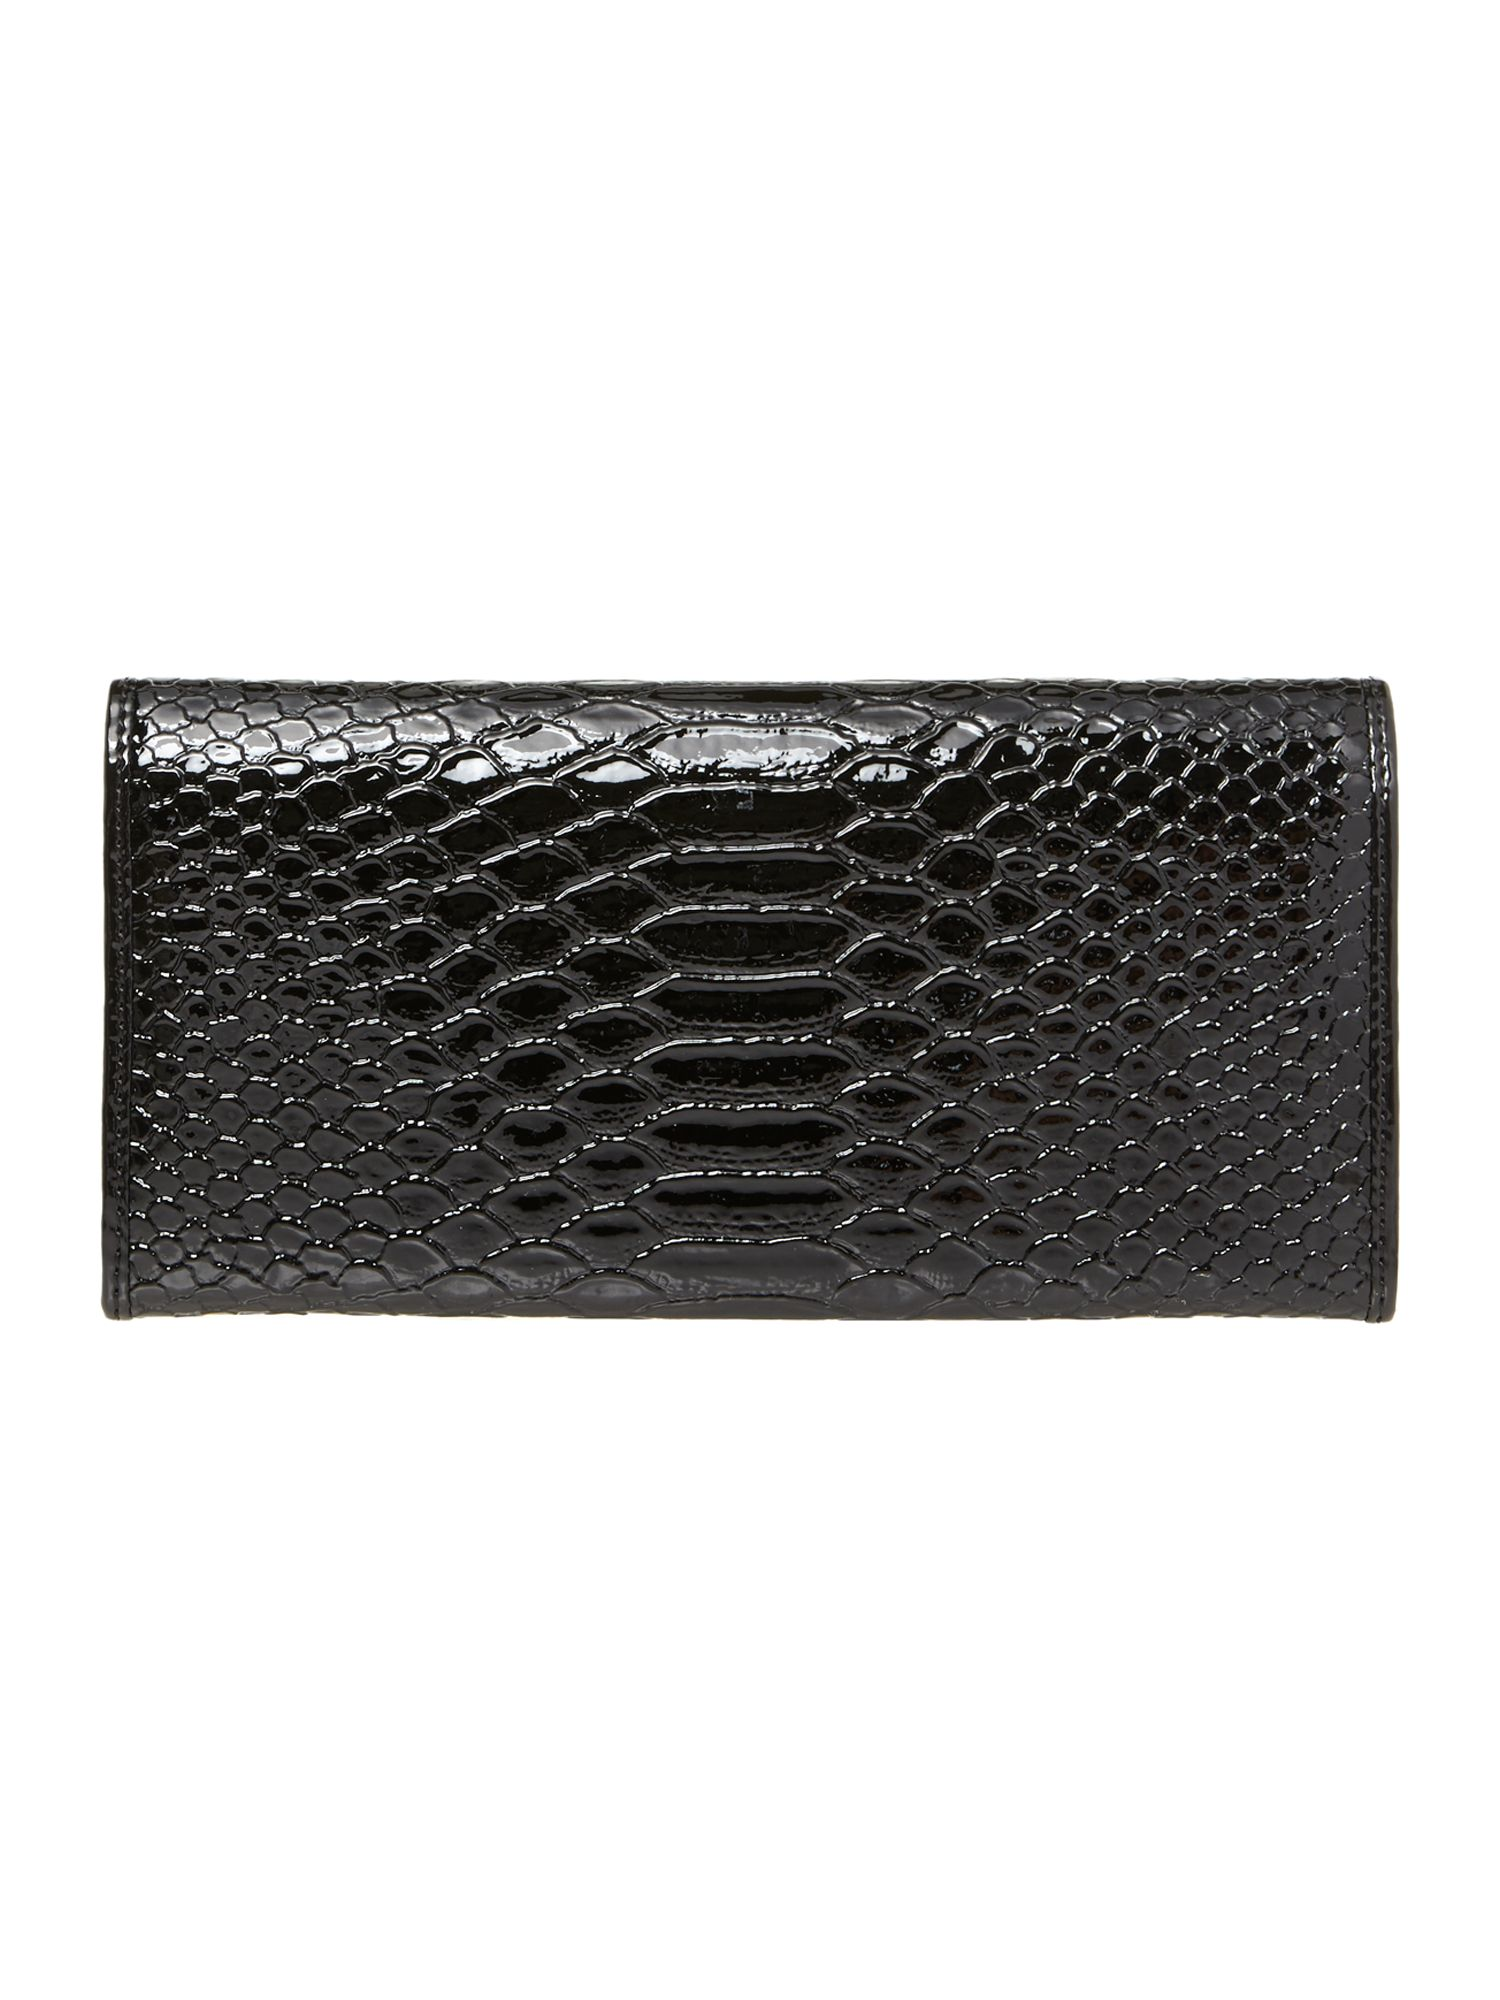 Frilly Snake large black flap over purse